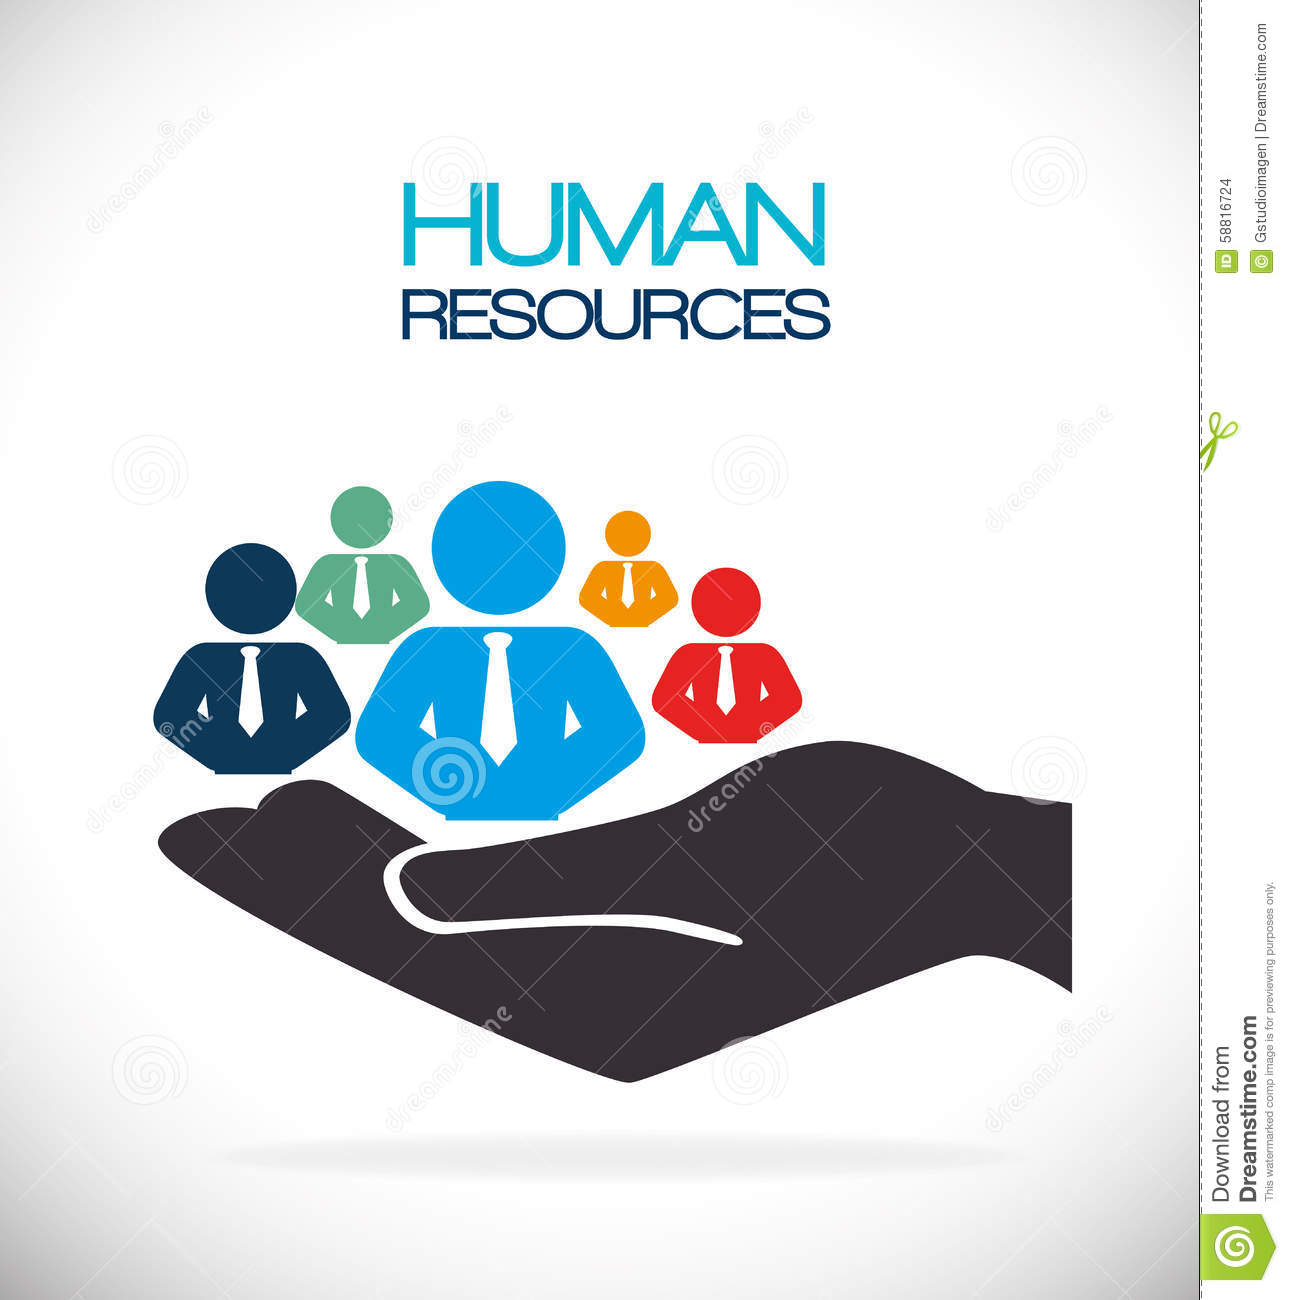 Human Resources: Human Resources Business Conceptual Royalty-Free Stock